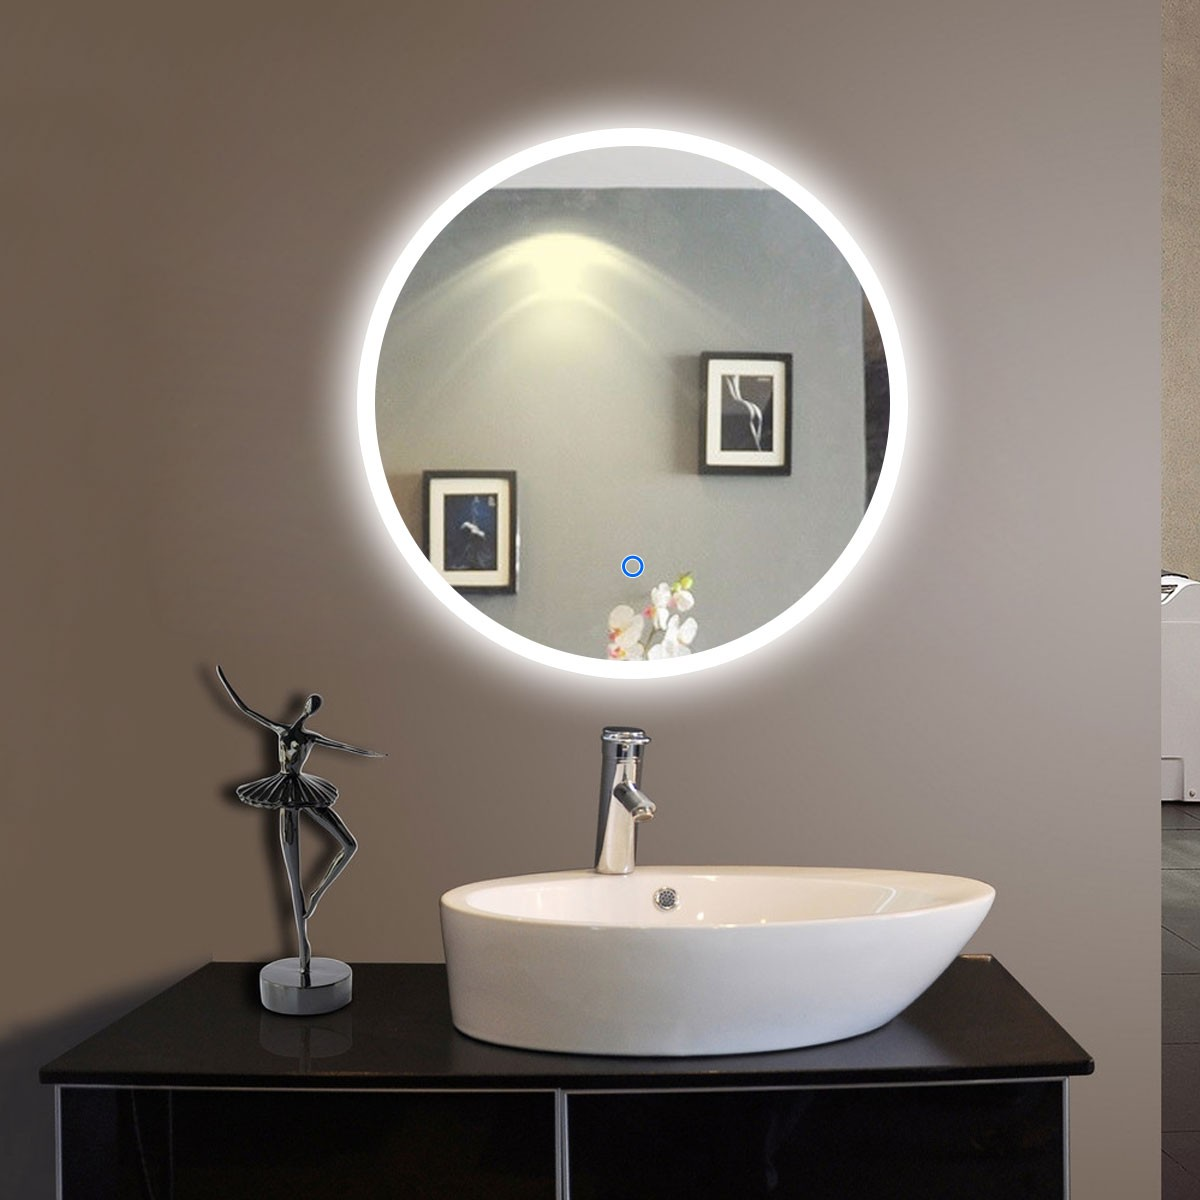 24 X 24 In Round Led Bathroom Silvered Mirror With Touch